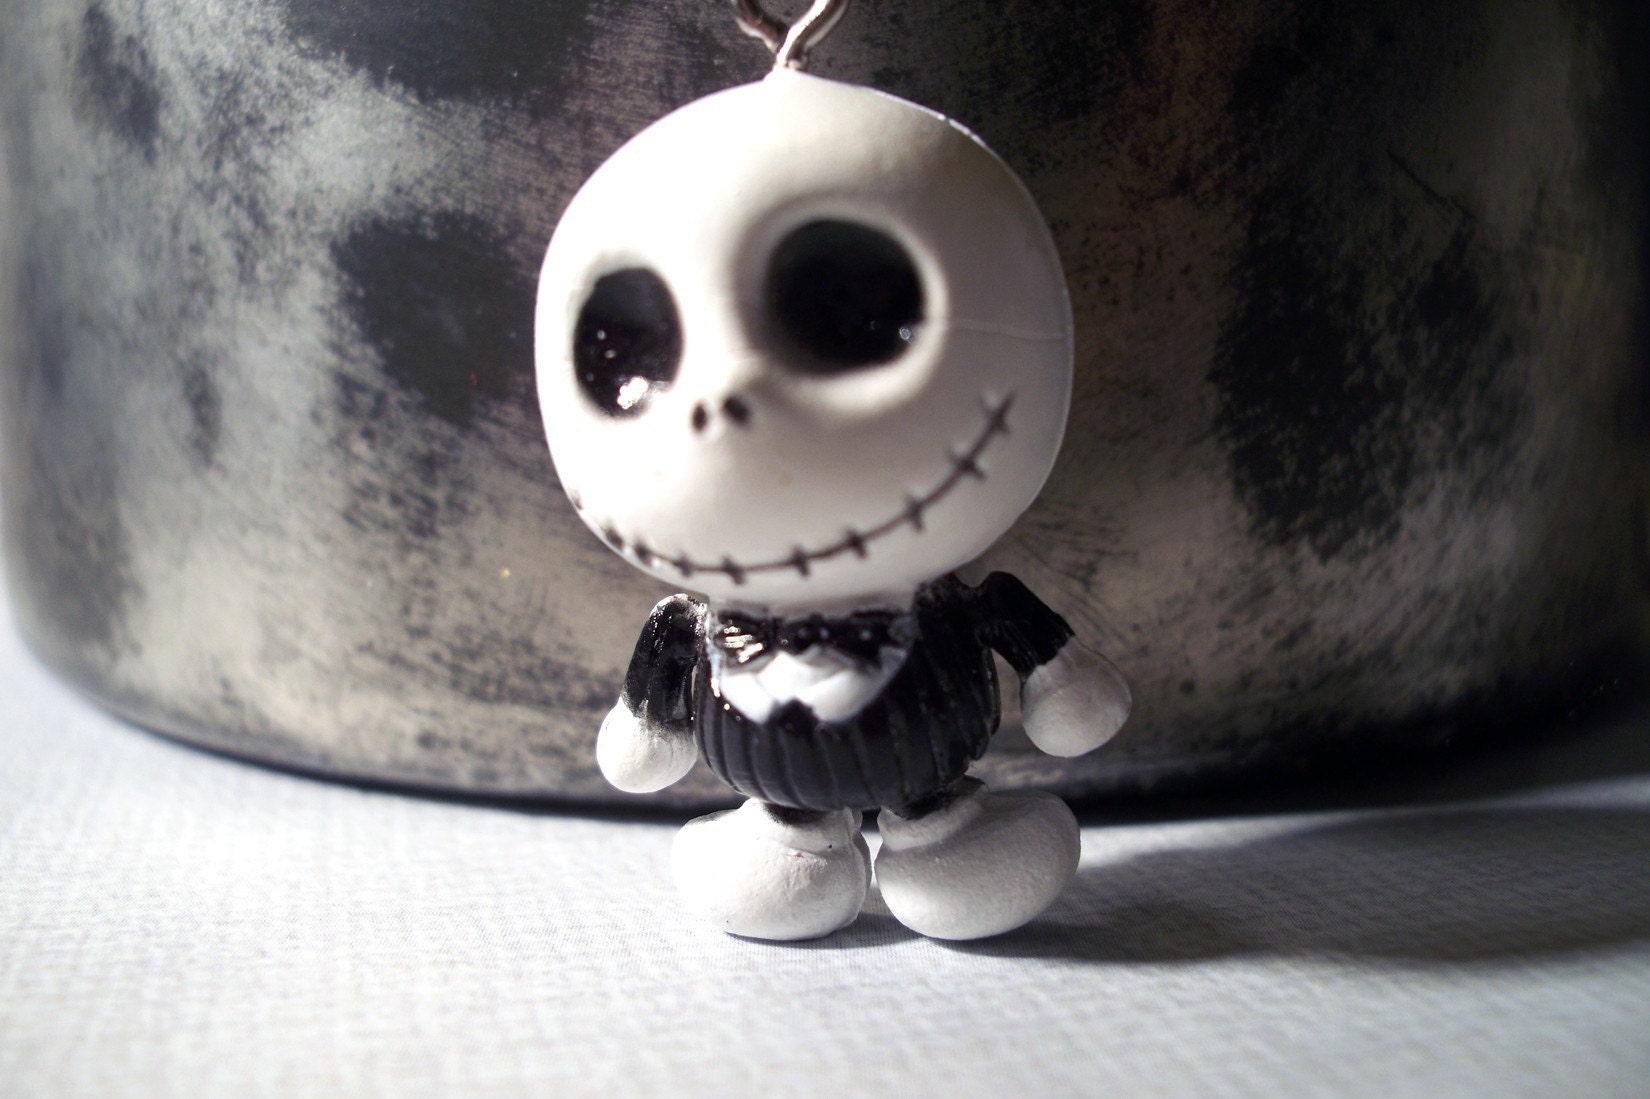 The Girl From Nightmare Before Christmas